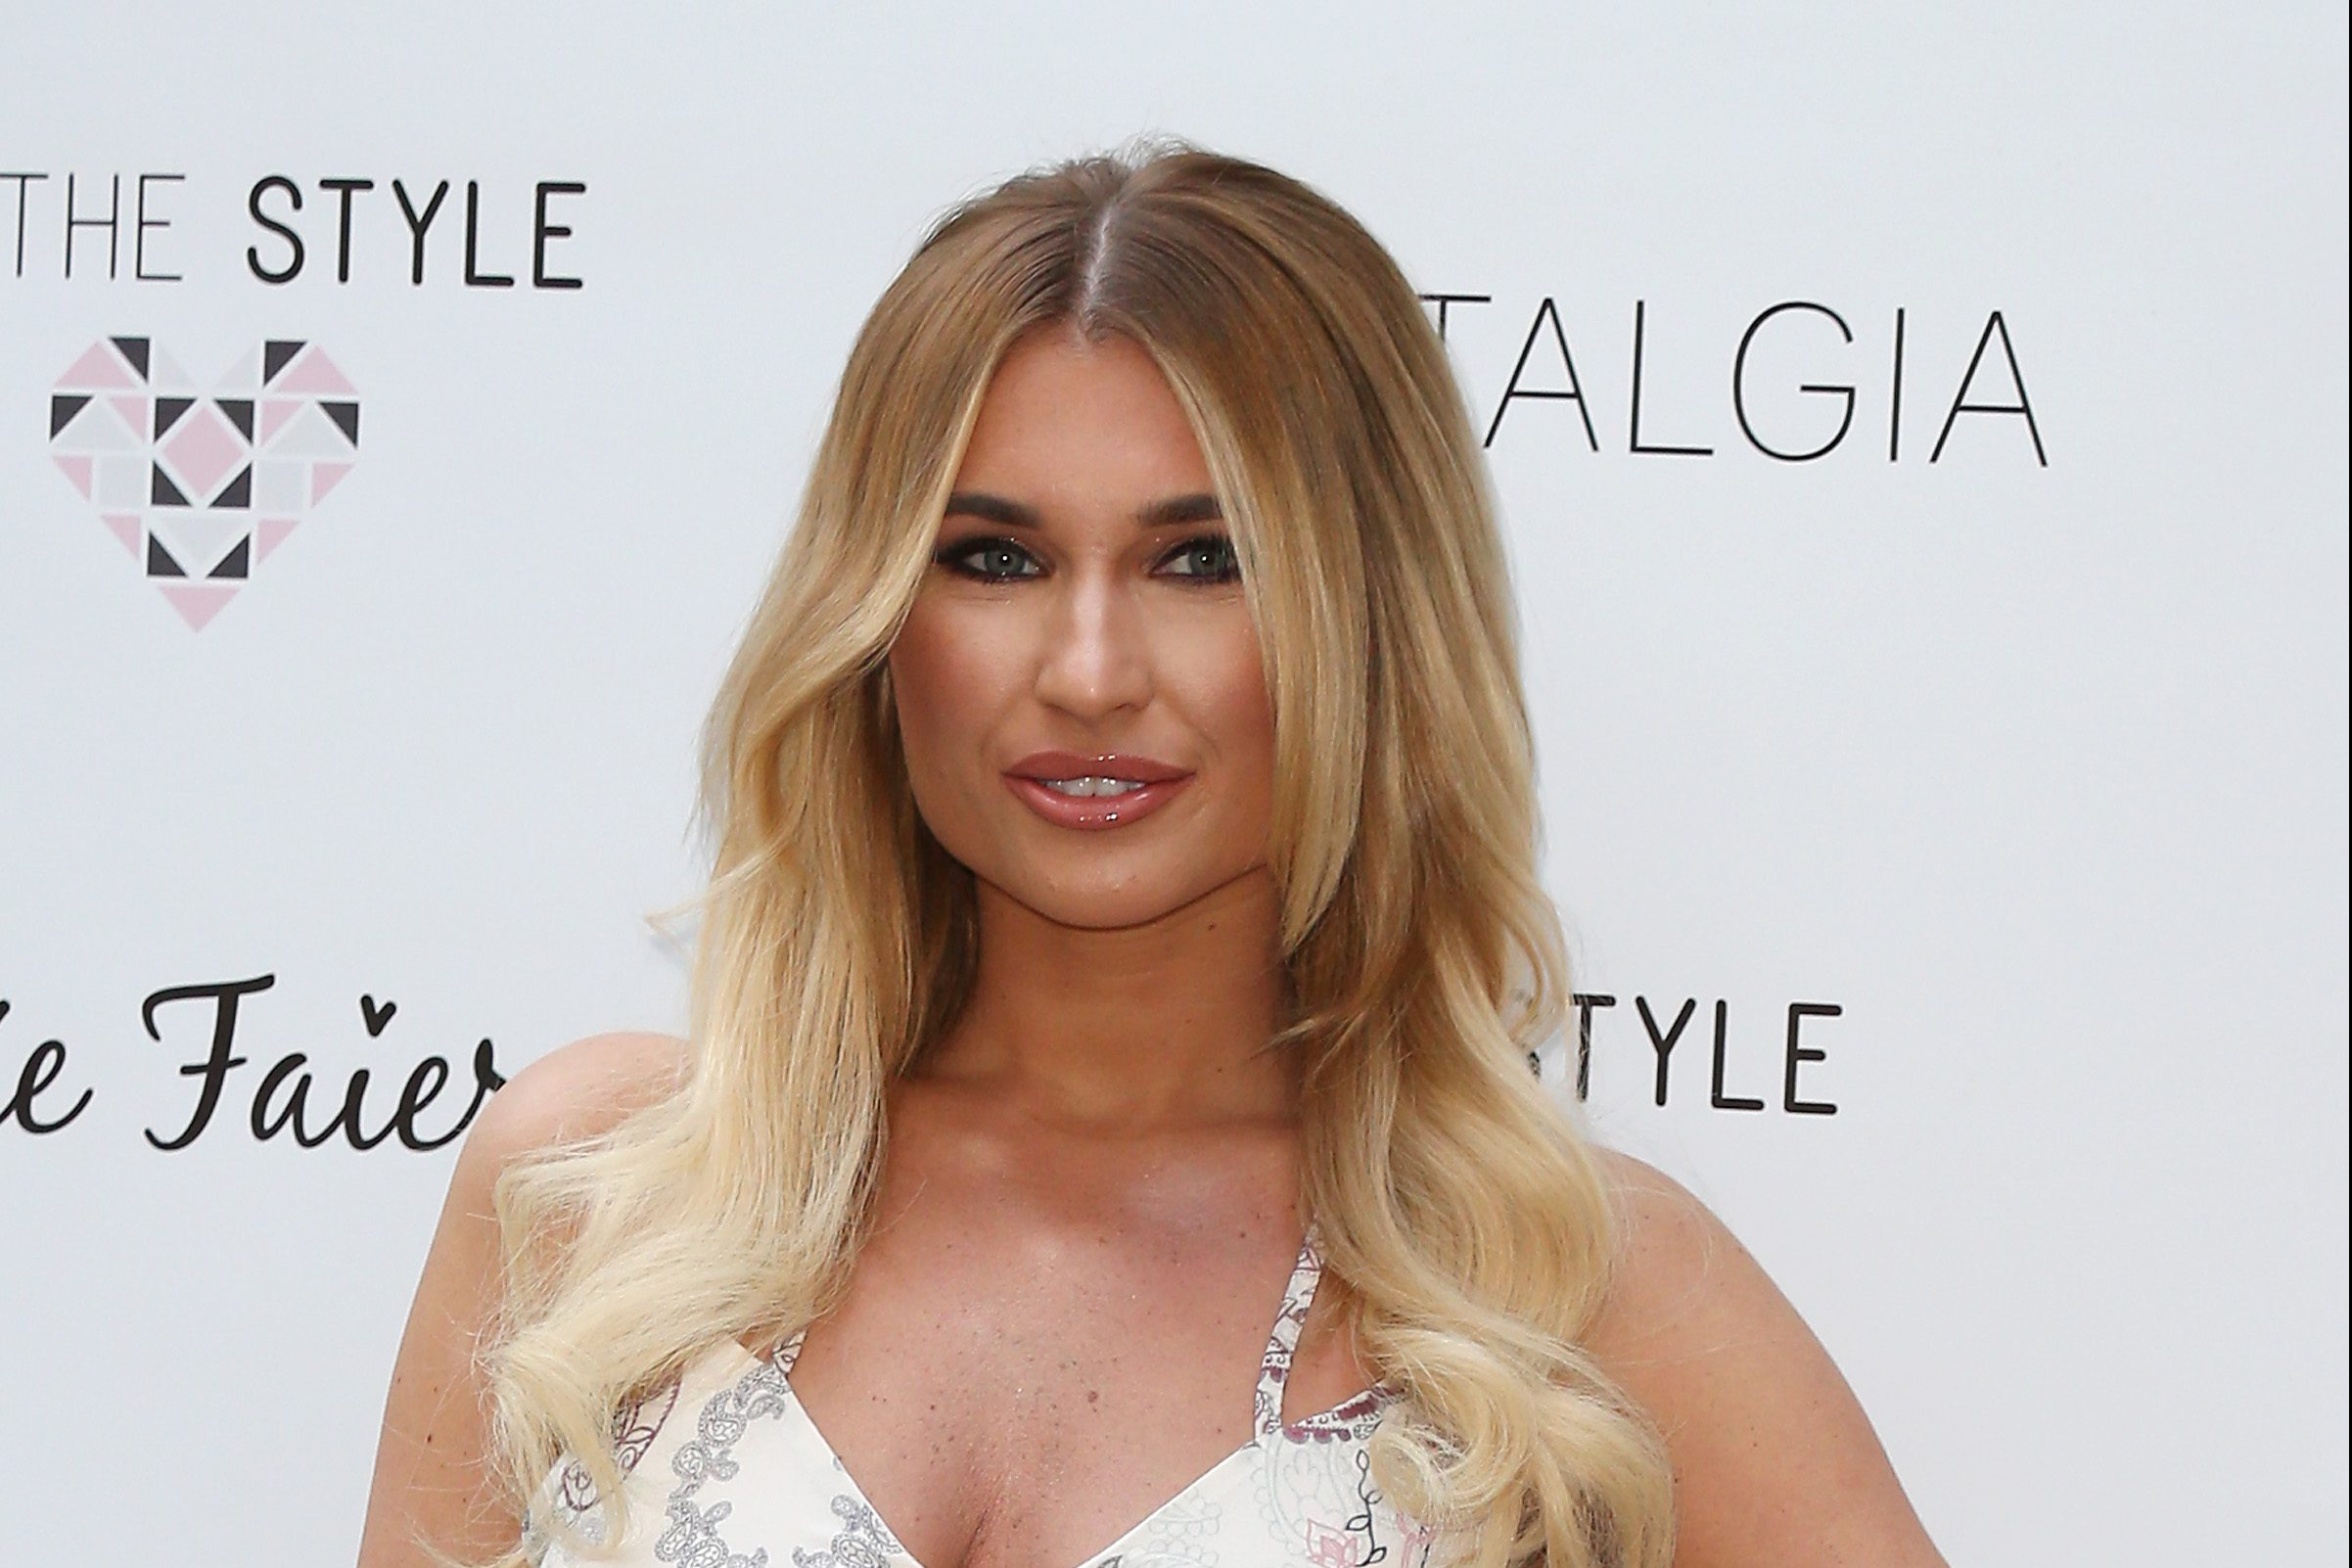 The Only Way Is Essex star Billie Faiers is pregnant again